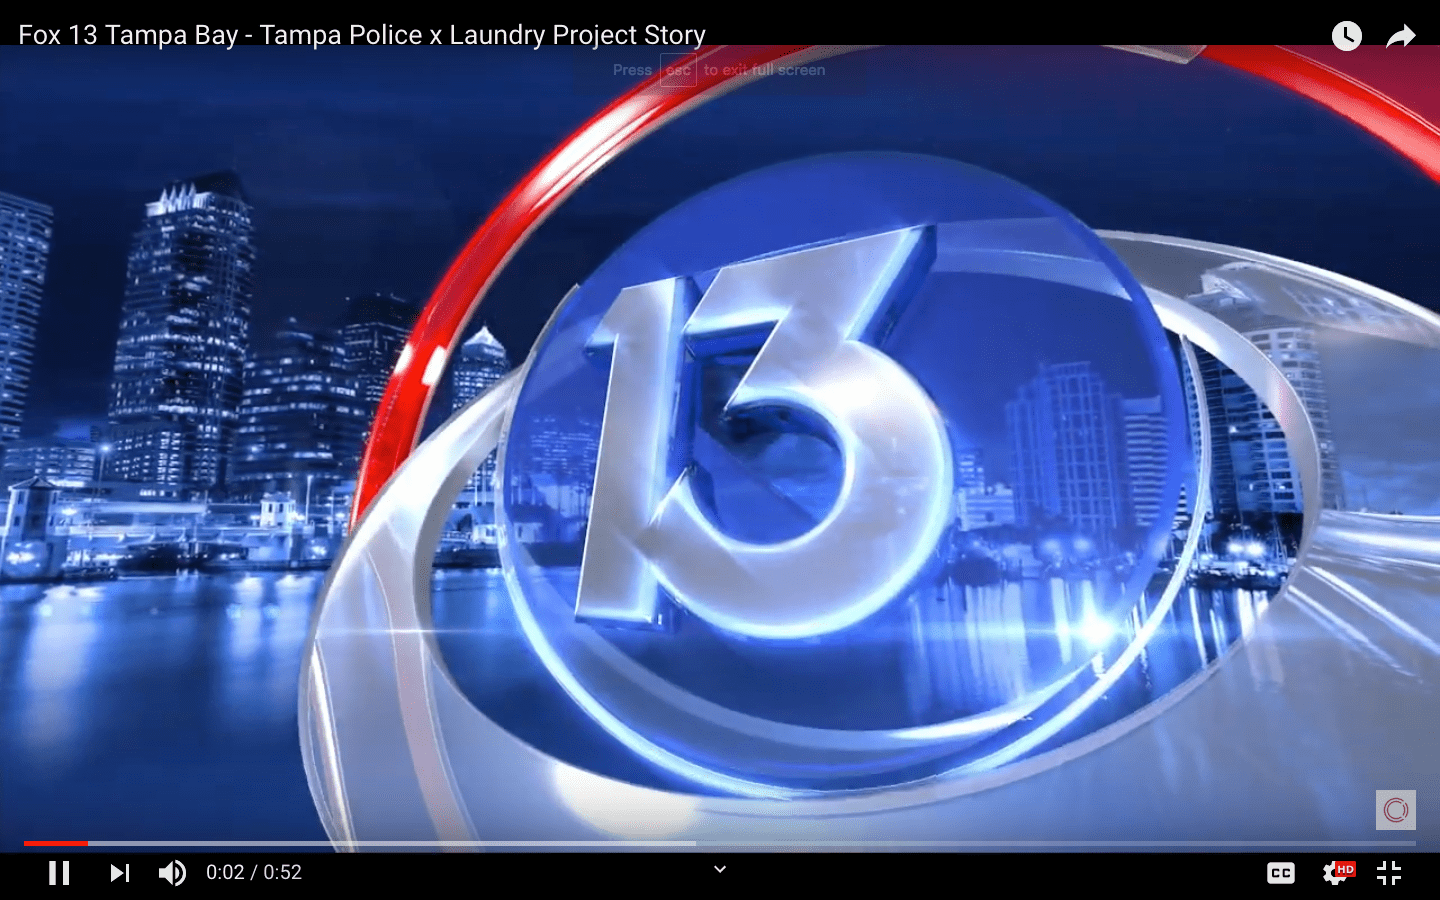 Fox 13 Tampa Bay – Tampa Police x Laundry Project Story